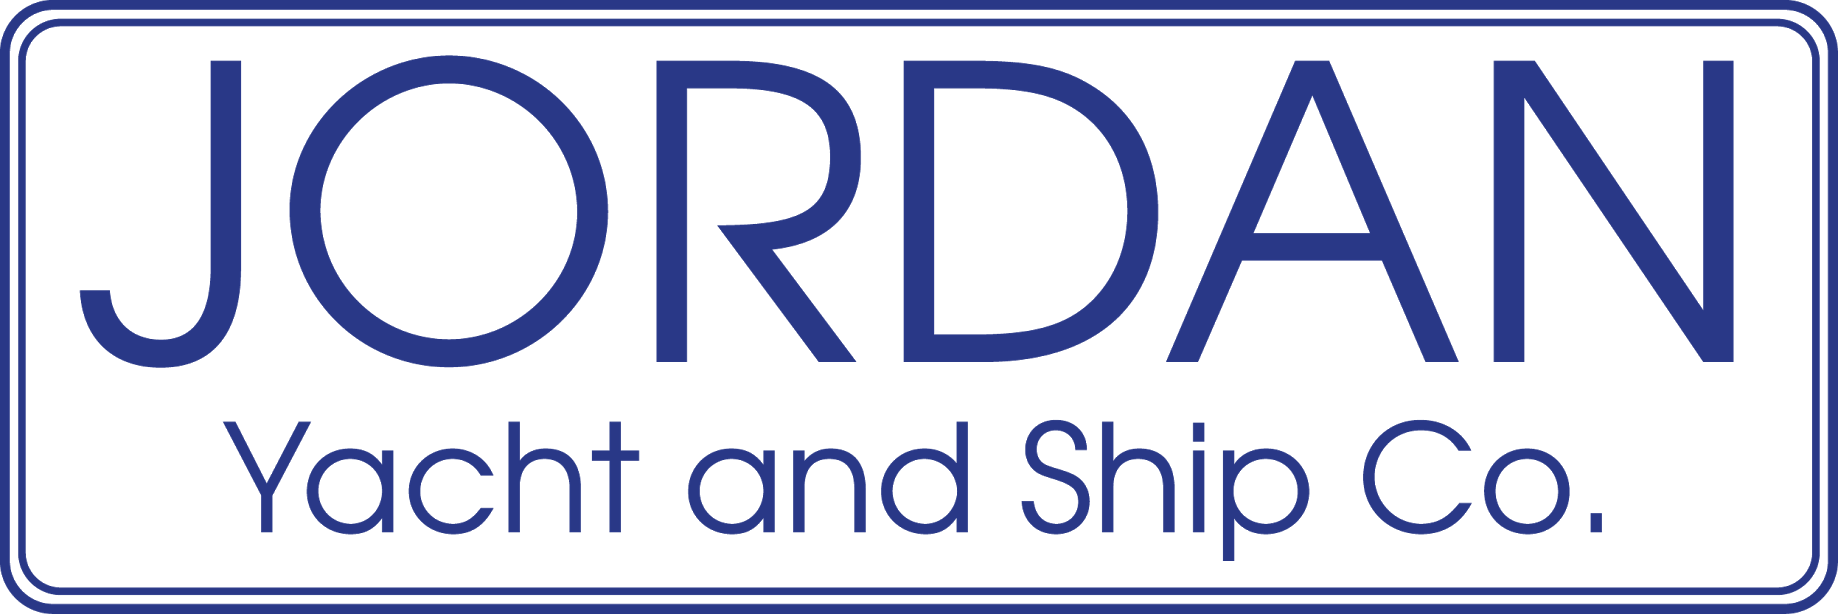 Jordan Yacht Brokerage